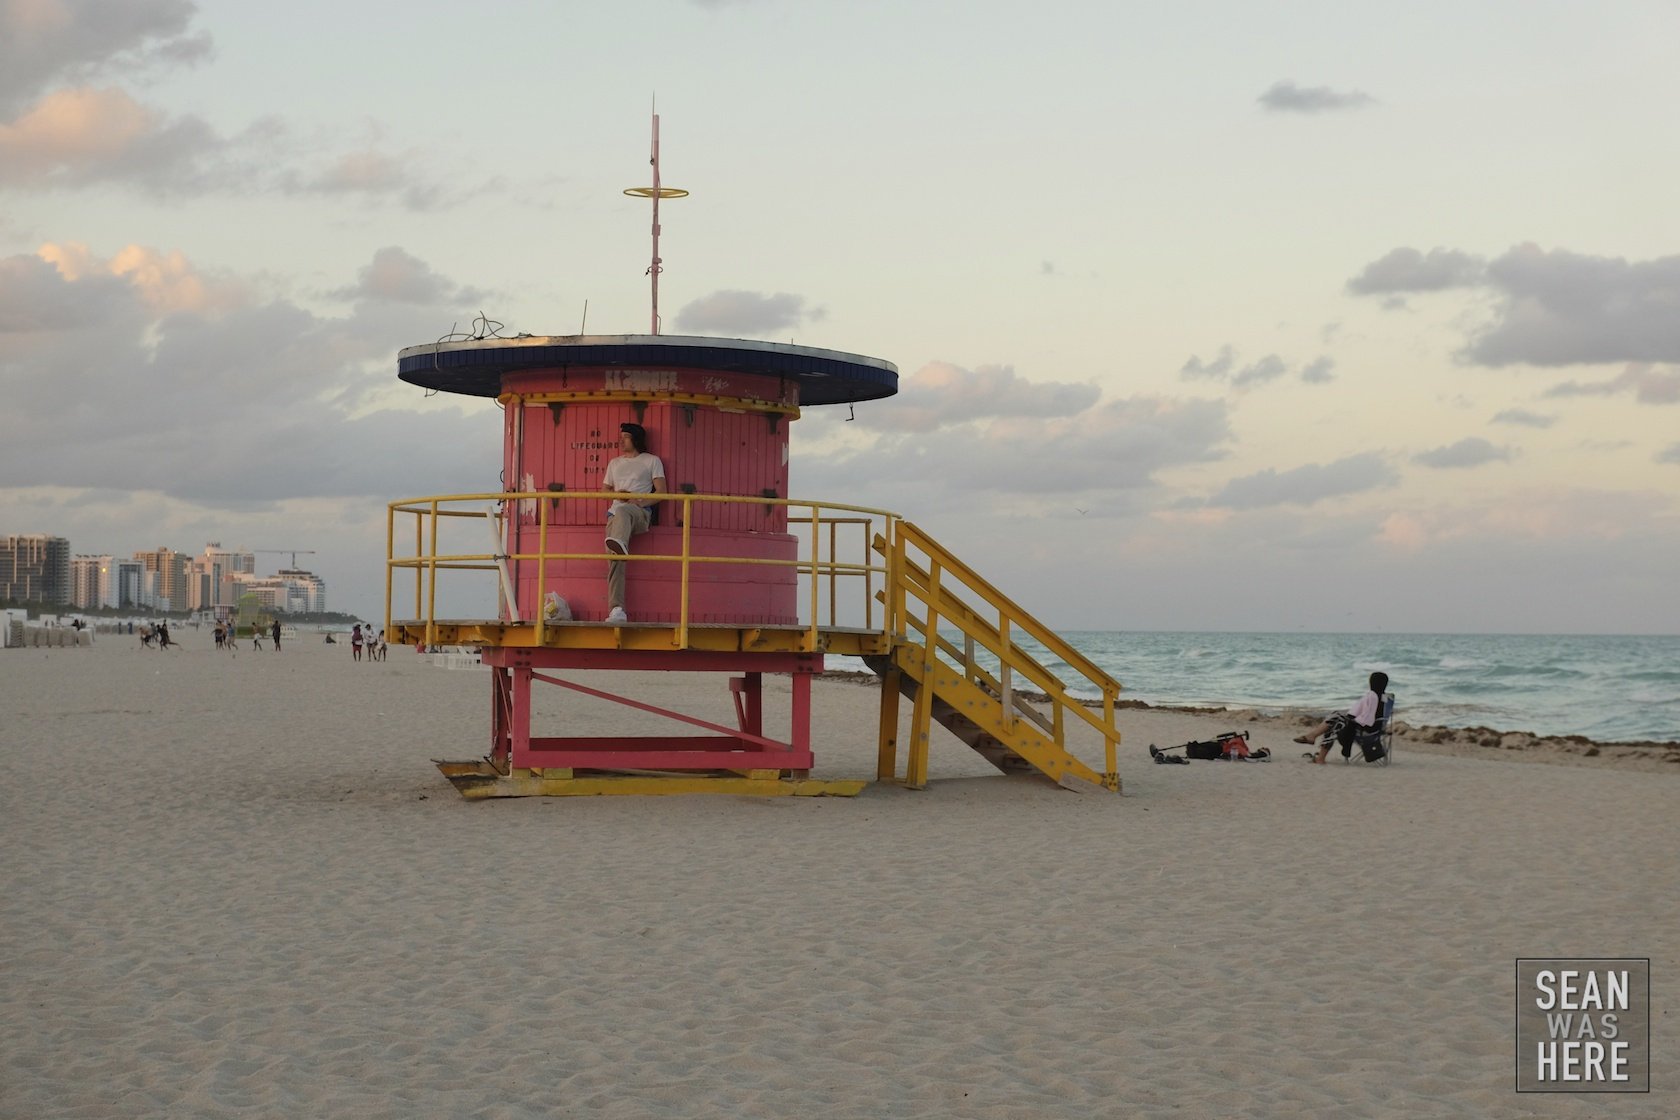 Miami Beach 10th Street Lifeguard Stand (old)